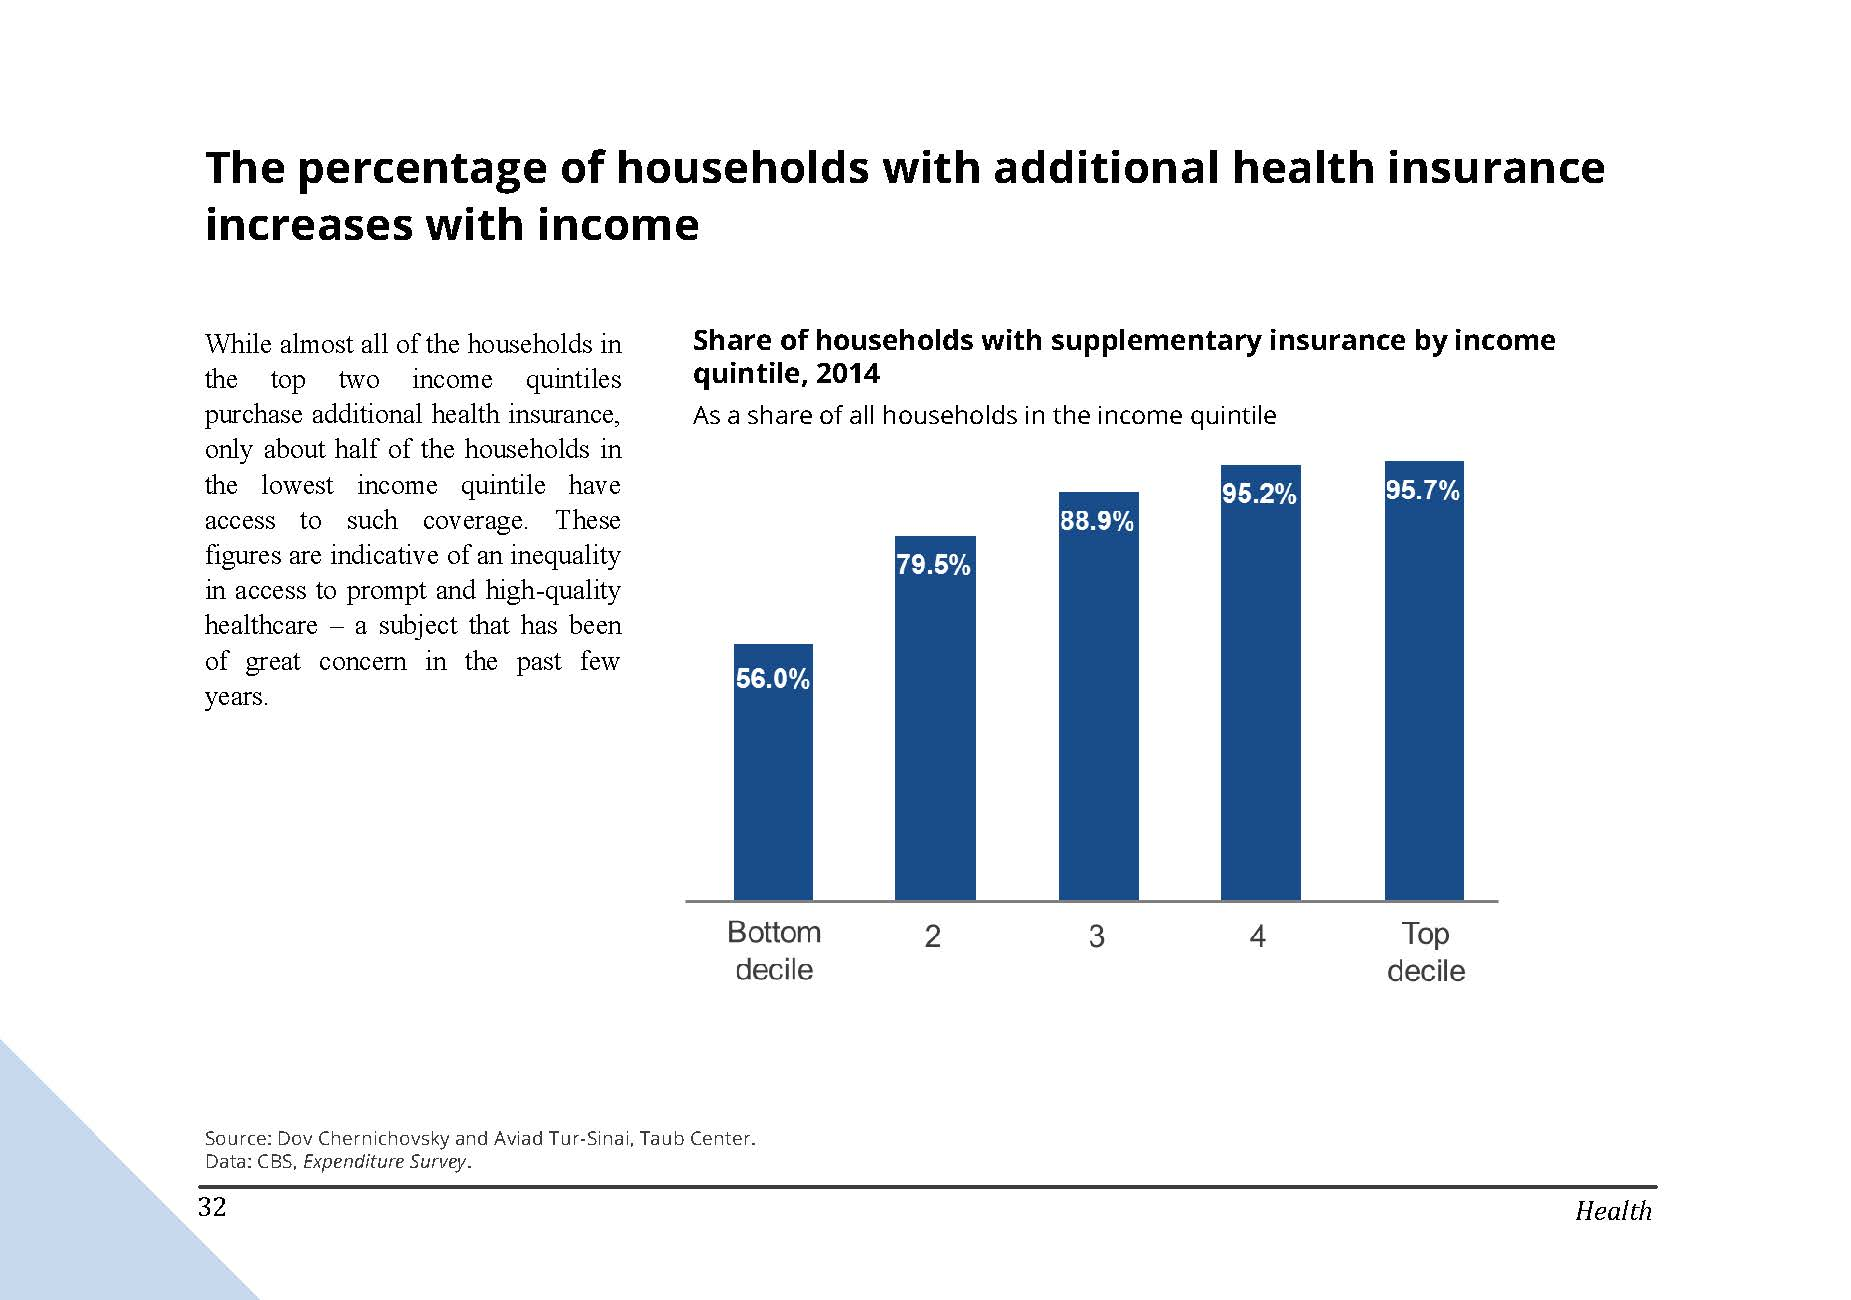 The percentage of households with additional health insurance in Israel increases with income